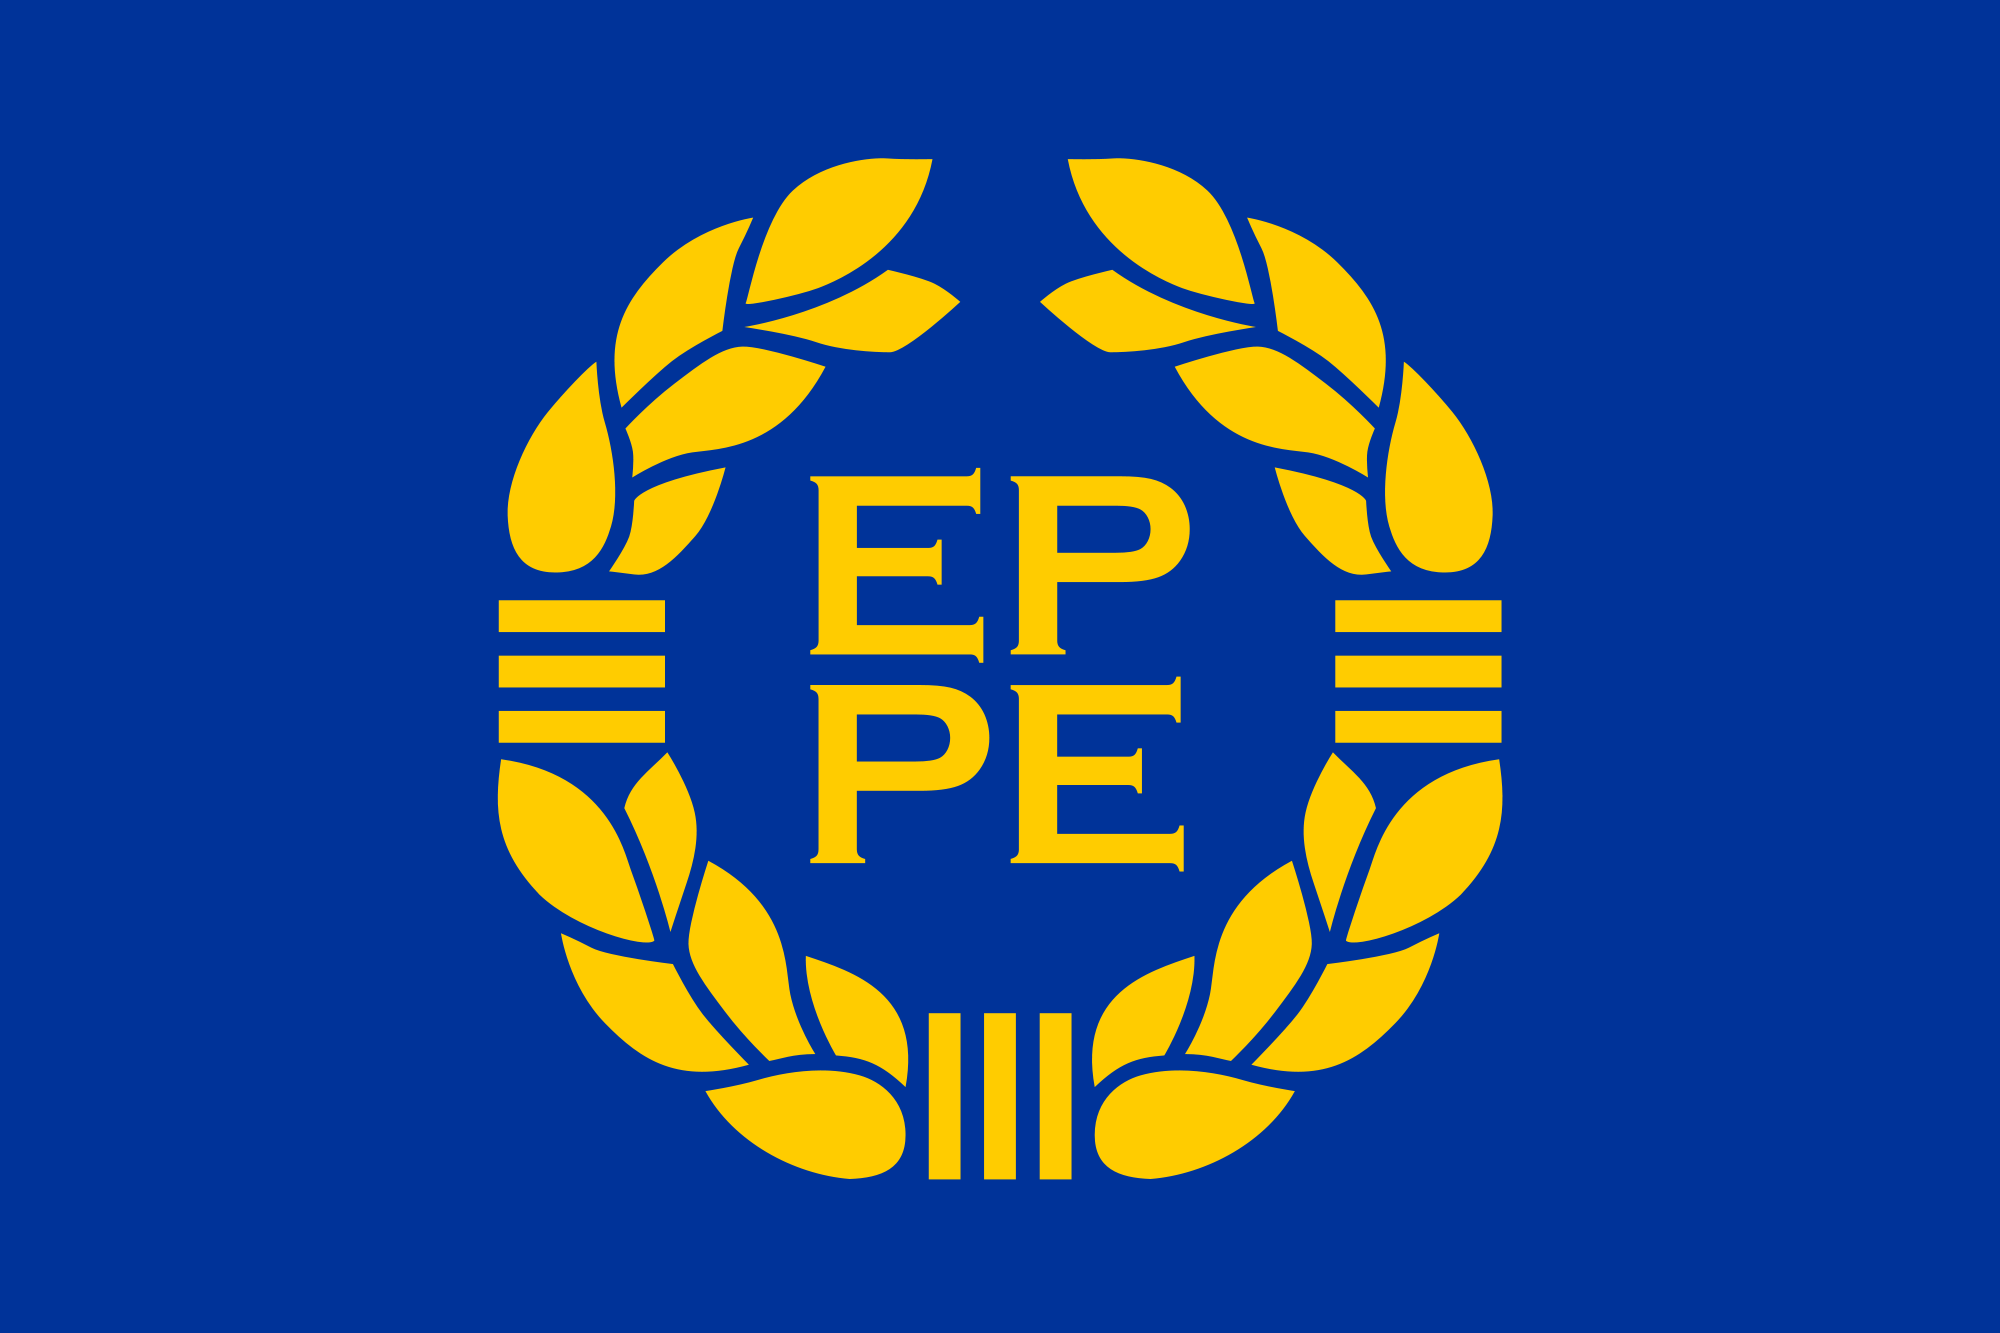 European Parliament 1973-1983